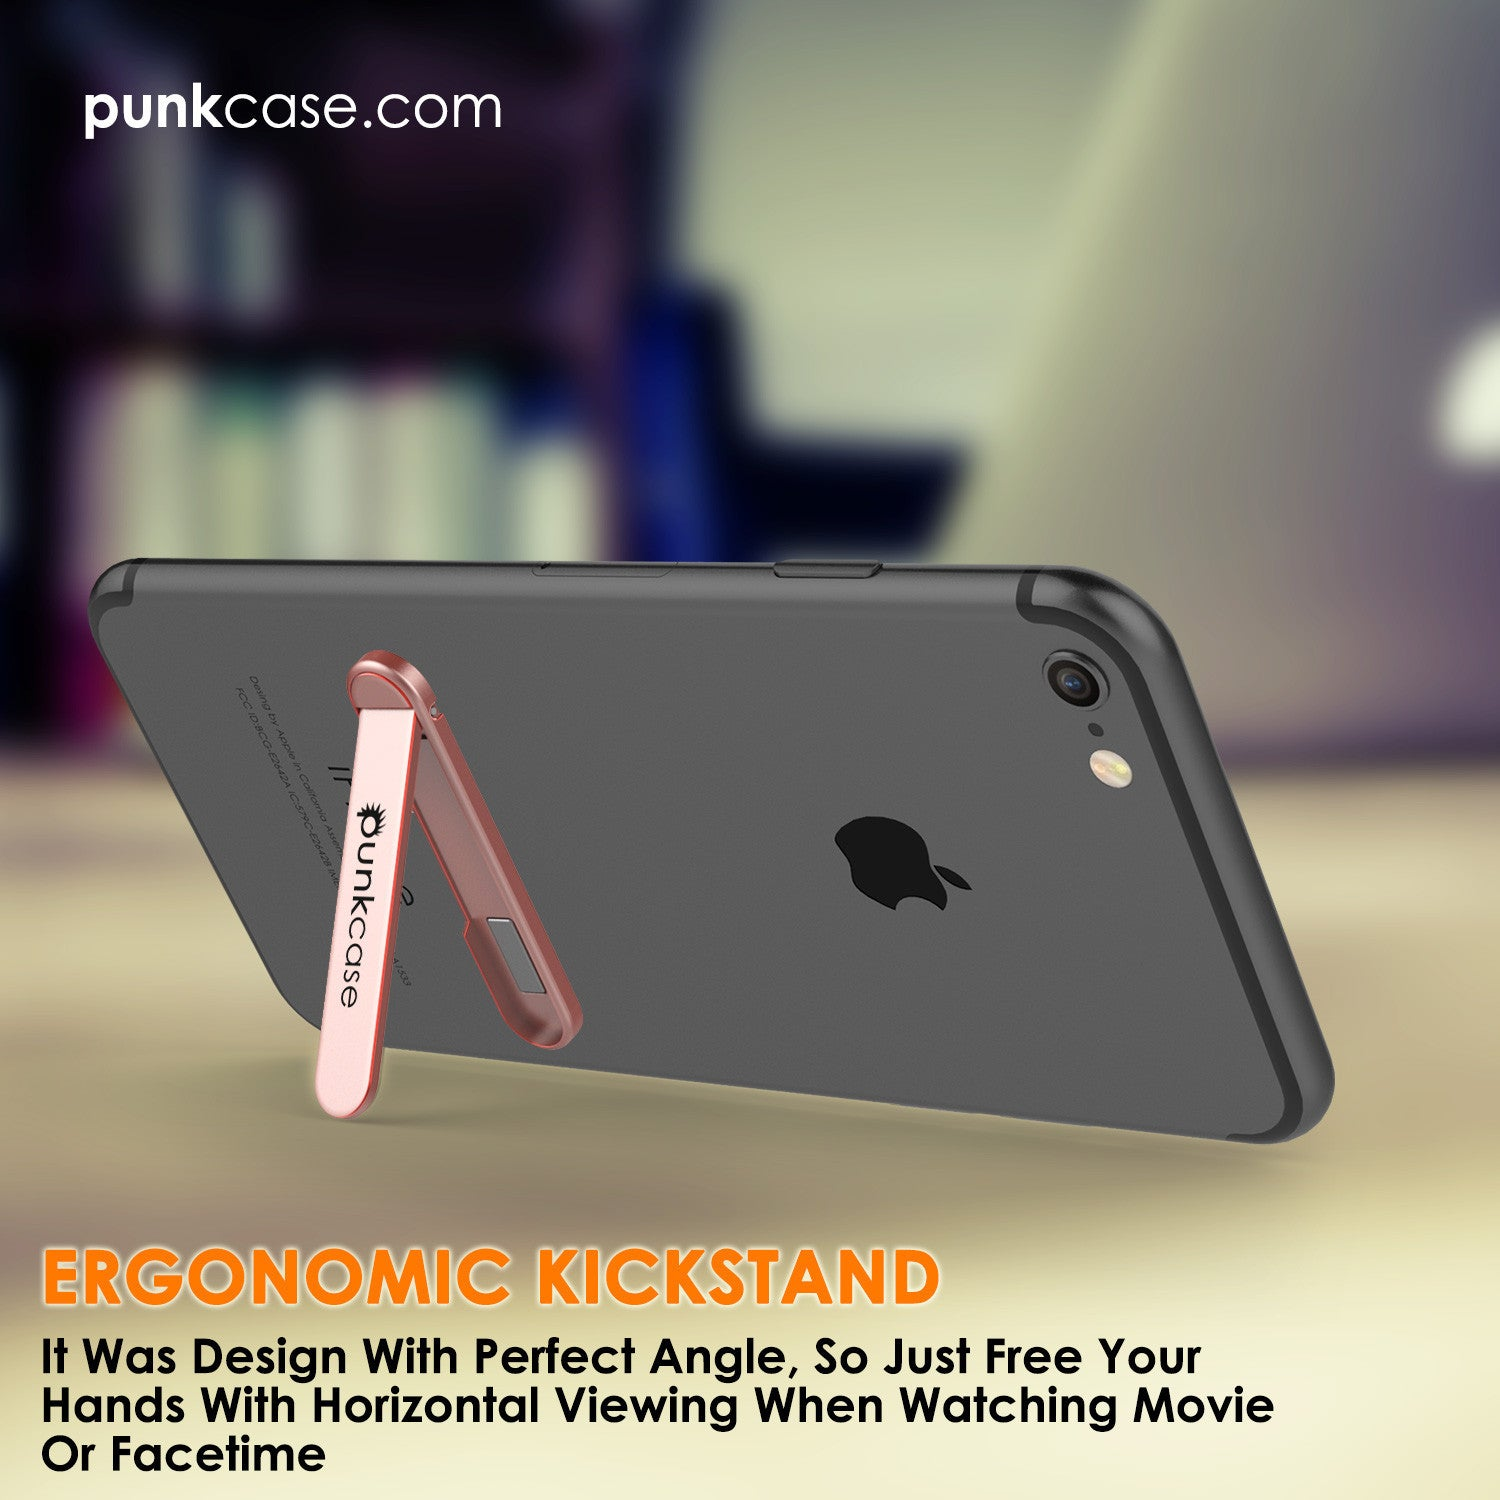 PUNKCASE FlickStick Universal Cell Phone Kickstand for all Mobile Phones & Cases with Flat Backs, One Finger Operation (Rose Gold)